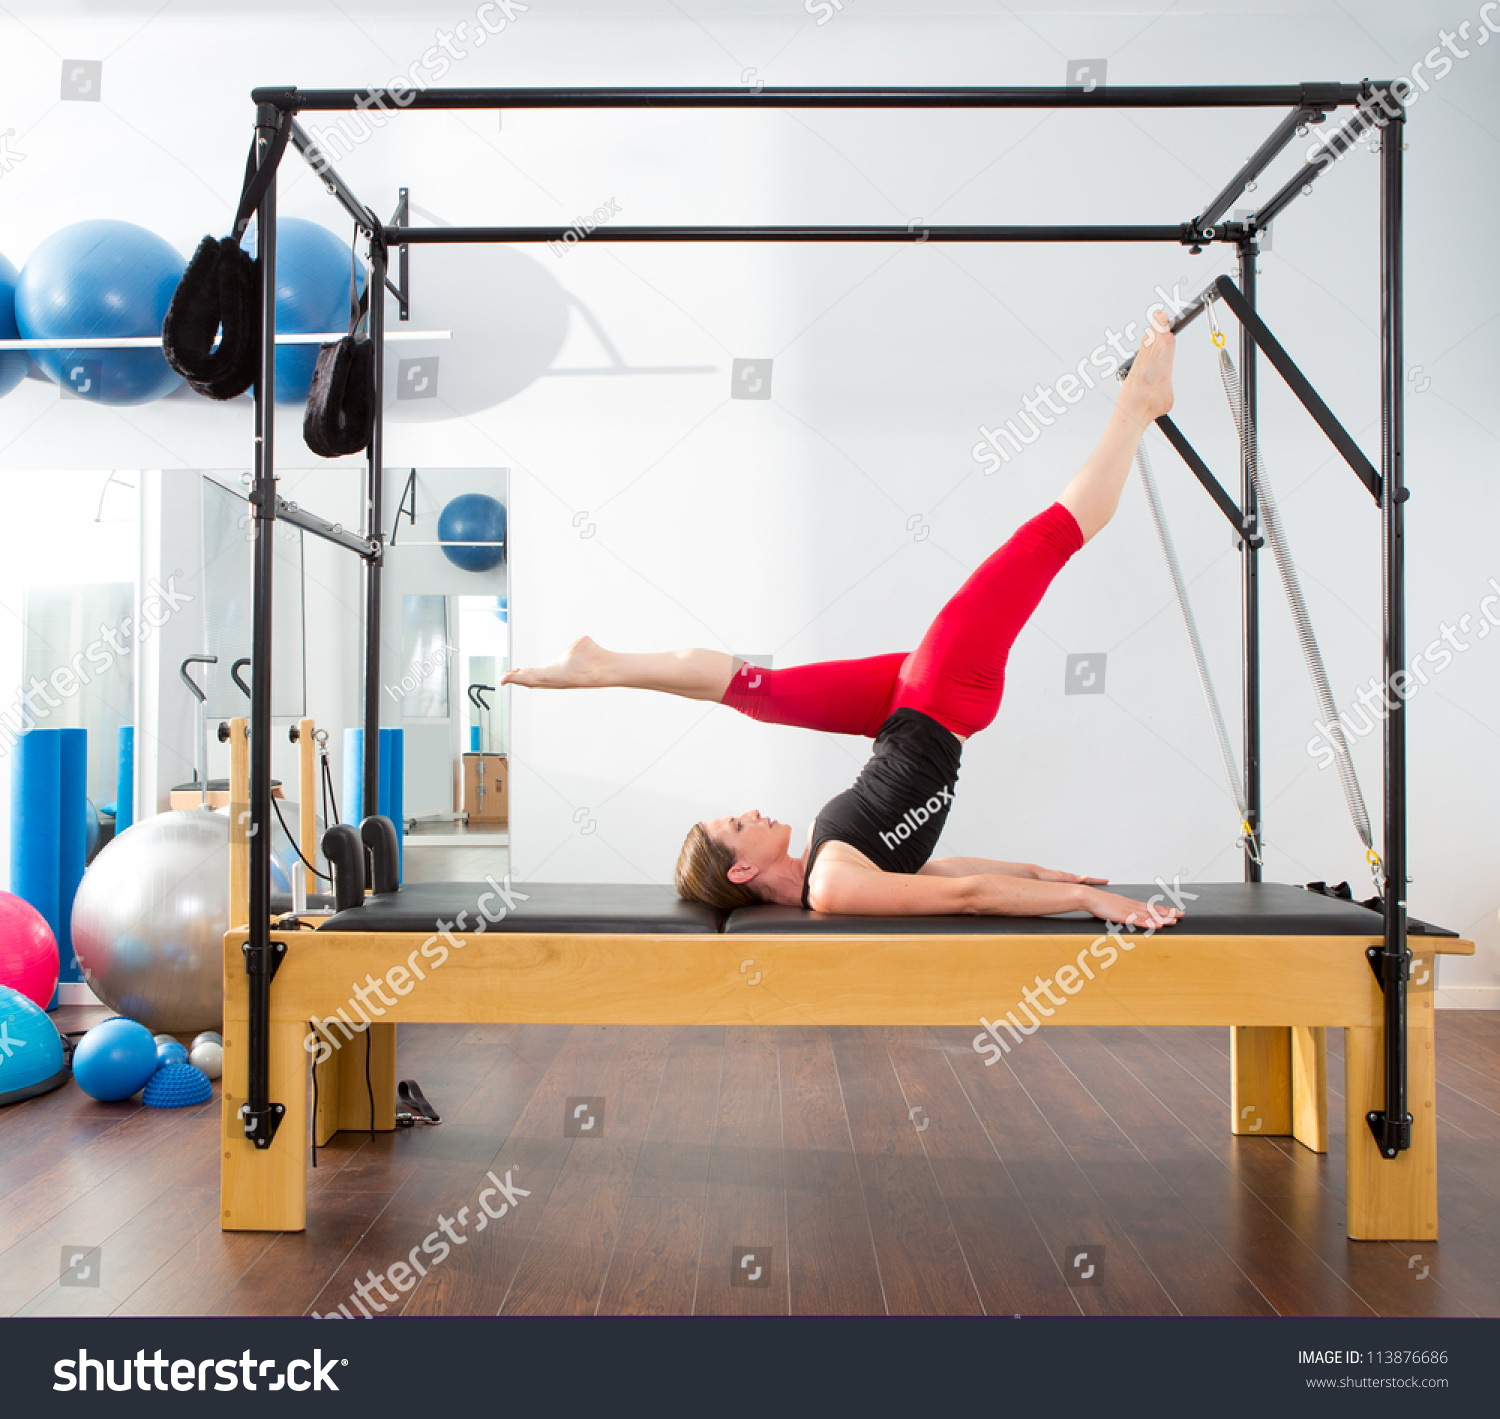 Woman Pilates Chair Exercises Fitness Stock Photo: Pilates Aerobic Instructor Woman Cadillac Fitness Stock